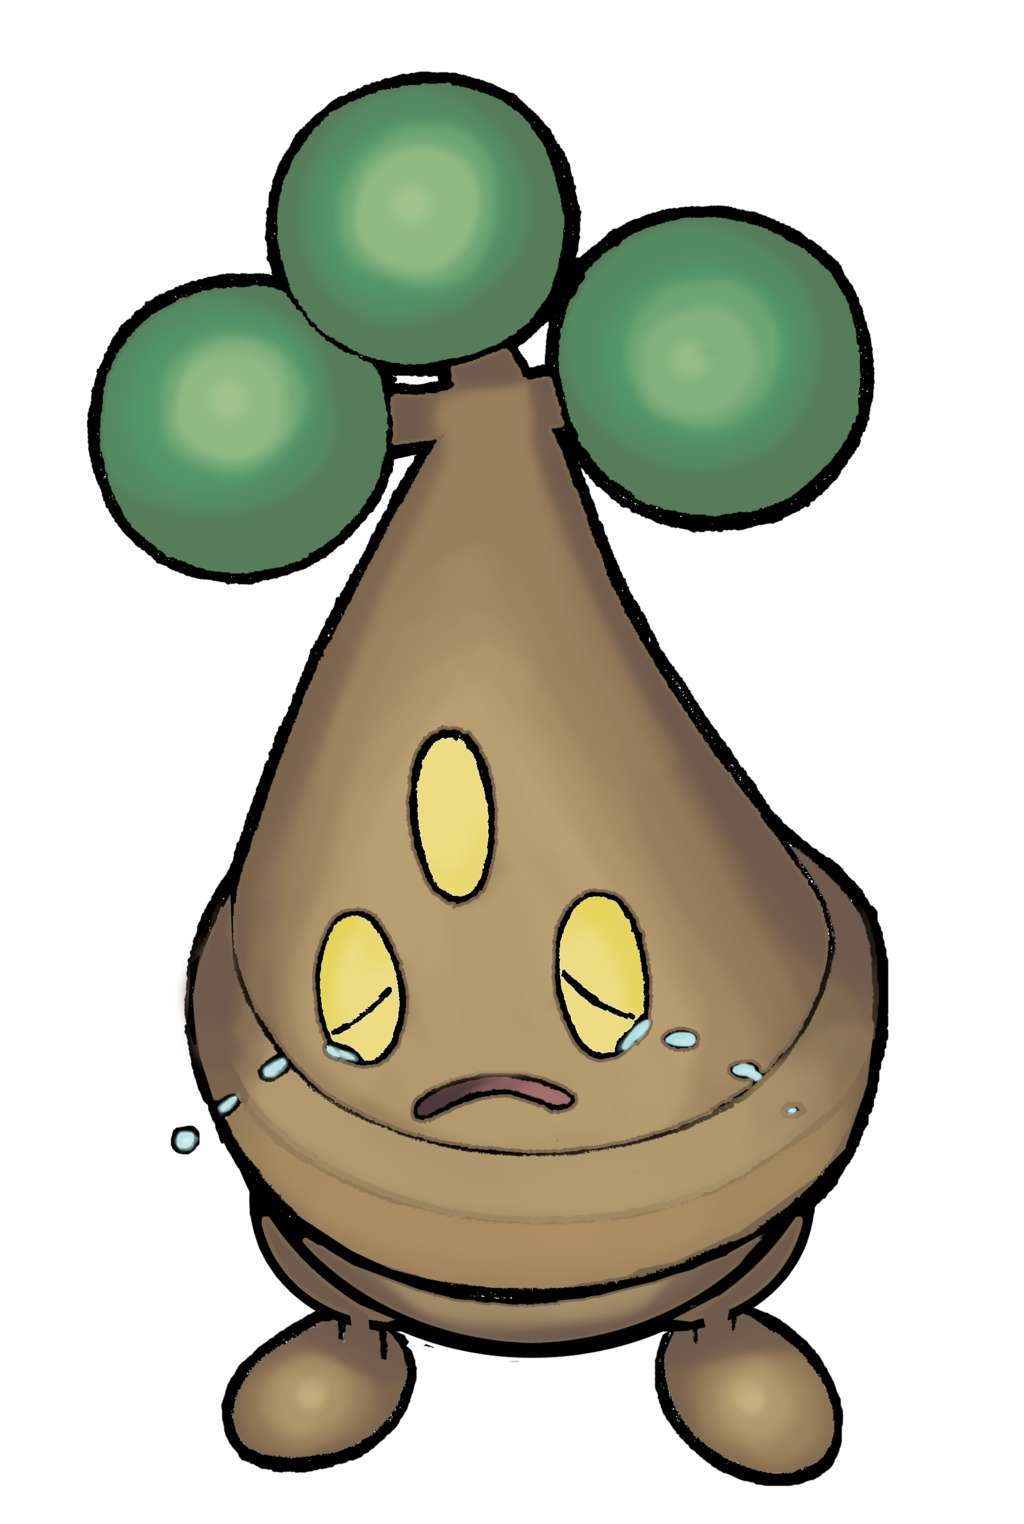 438 Bonsly (color) by realarpmbq on DeviantArt.